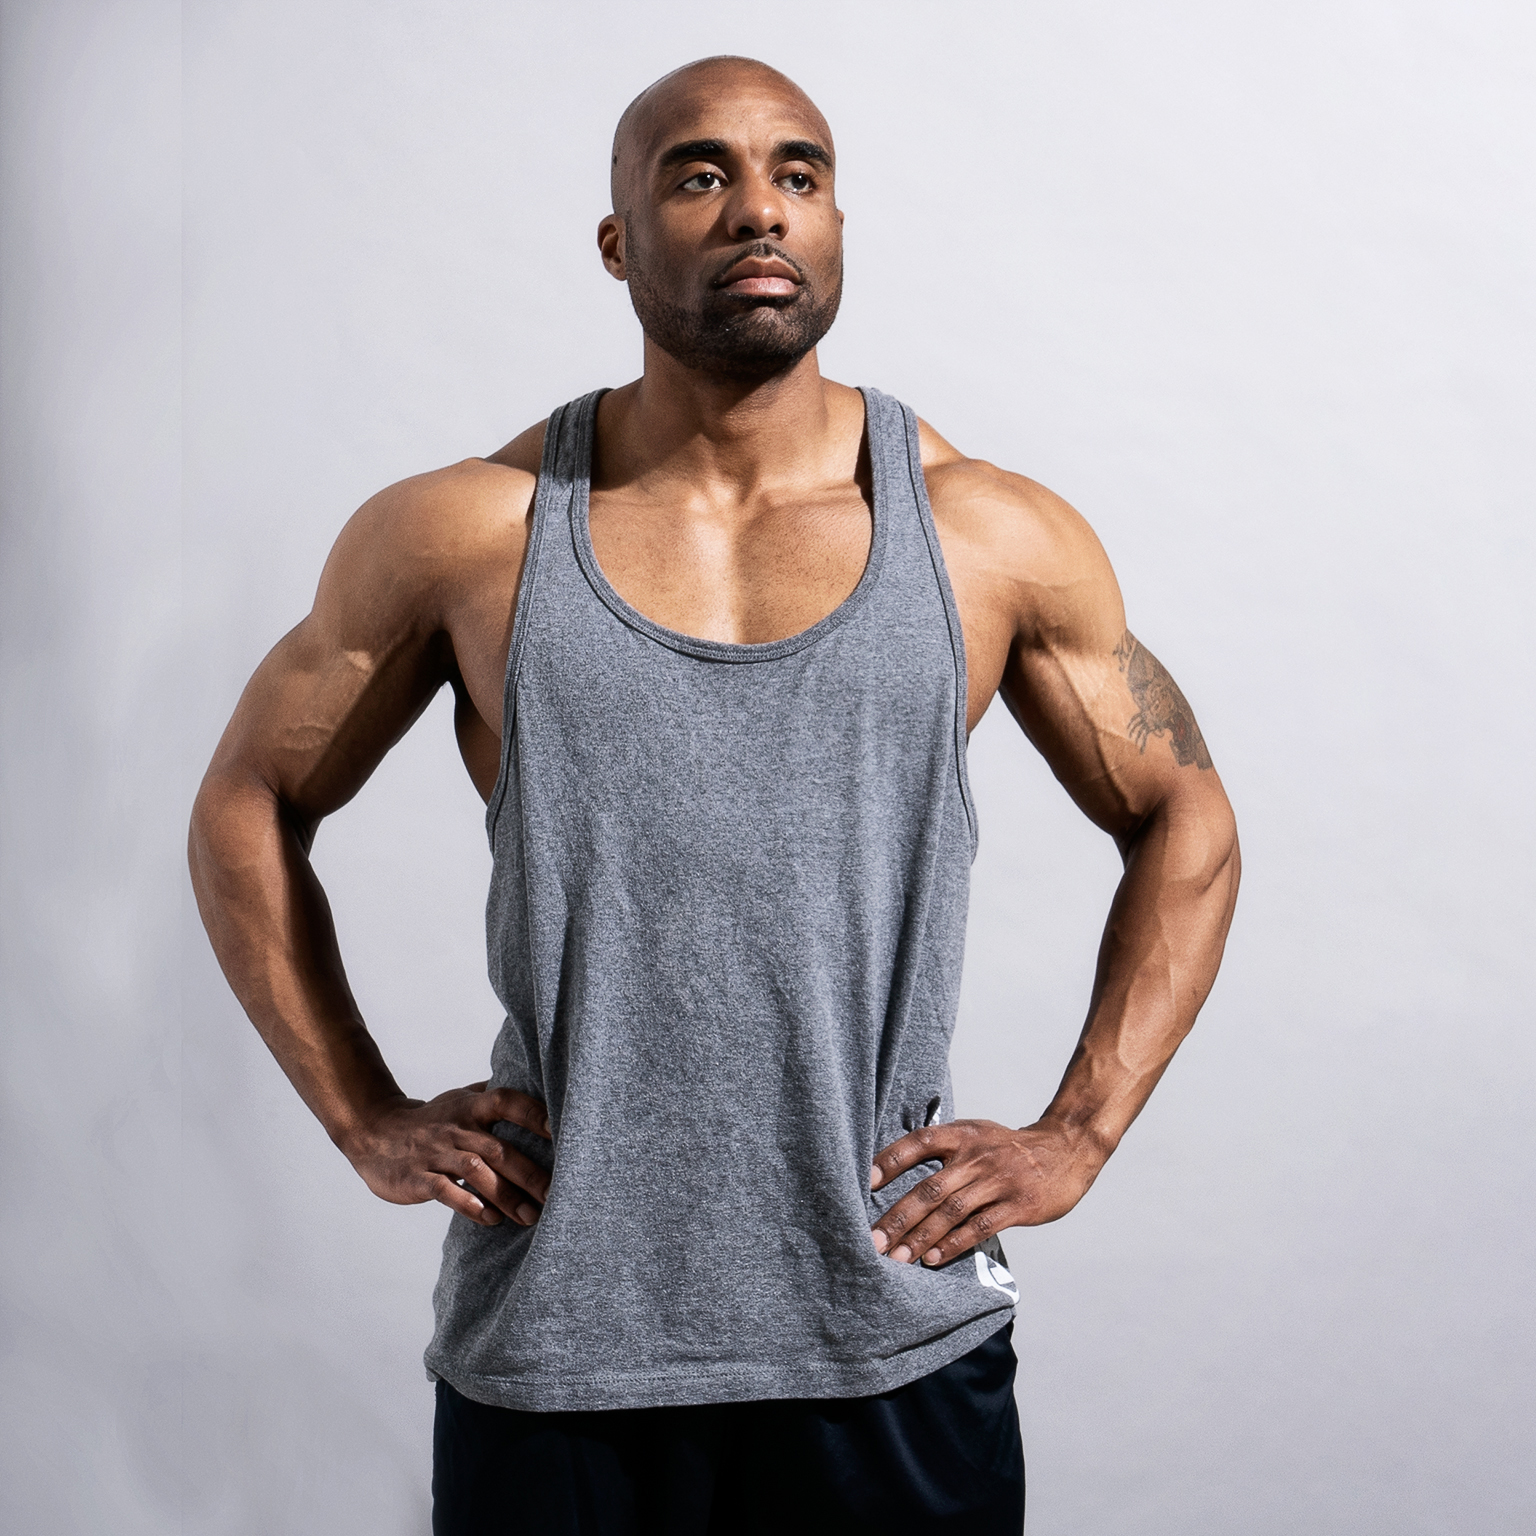 Toronto-Fitness-Model-Agency-Lifestyle-Commercial-Kevin-Smith